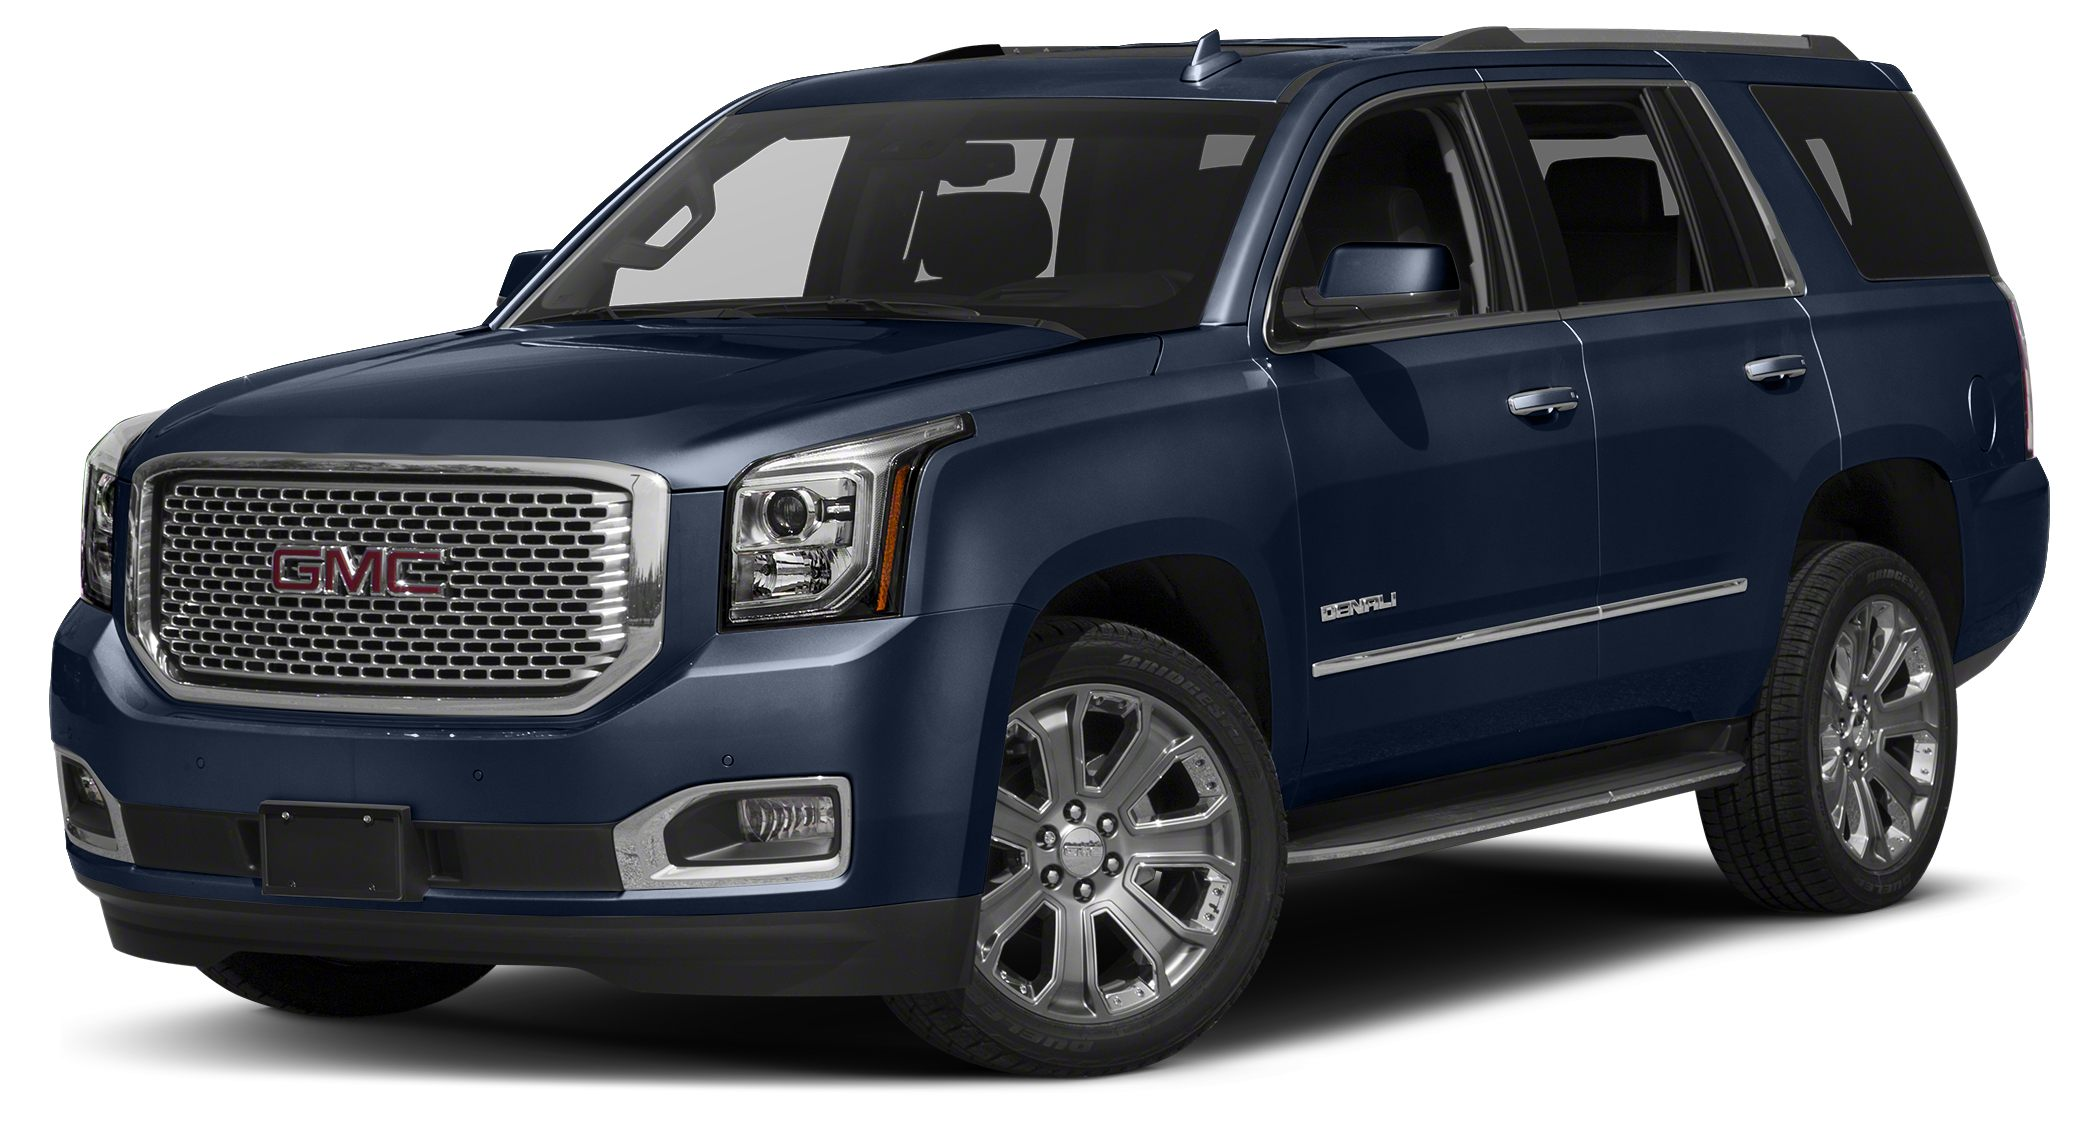 2018 GMC Yukon Denali Treat yourself to this 2018 GMC Yukon Denali which features a backup sensor